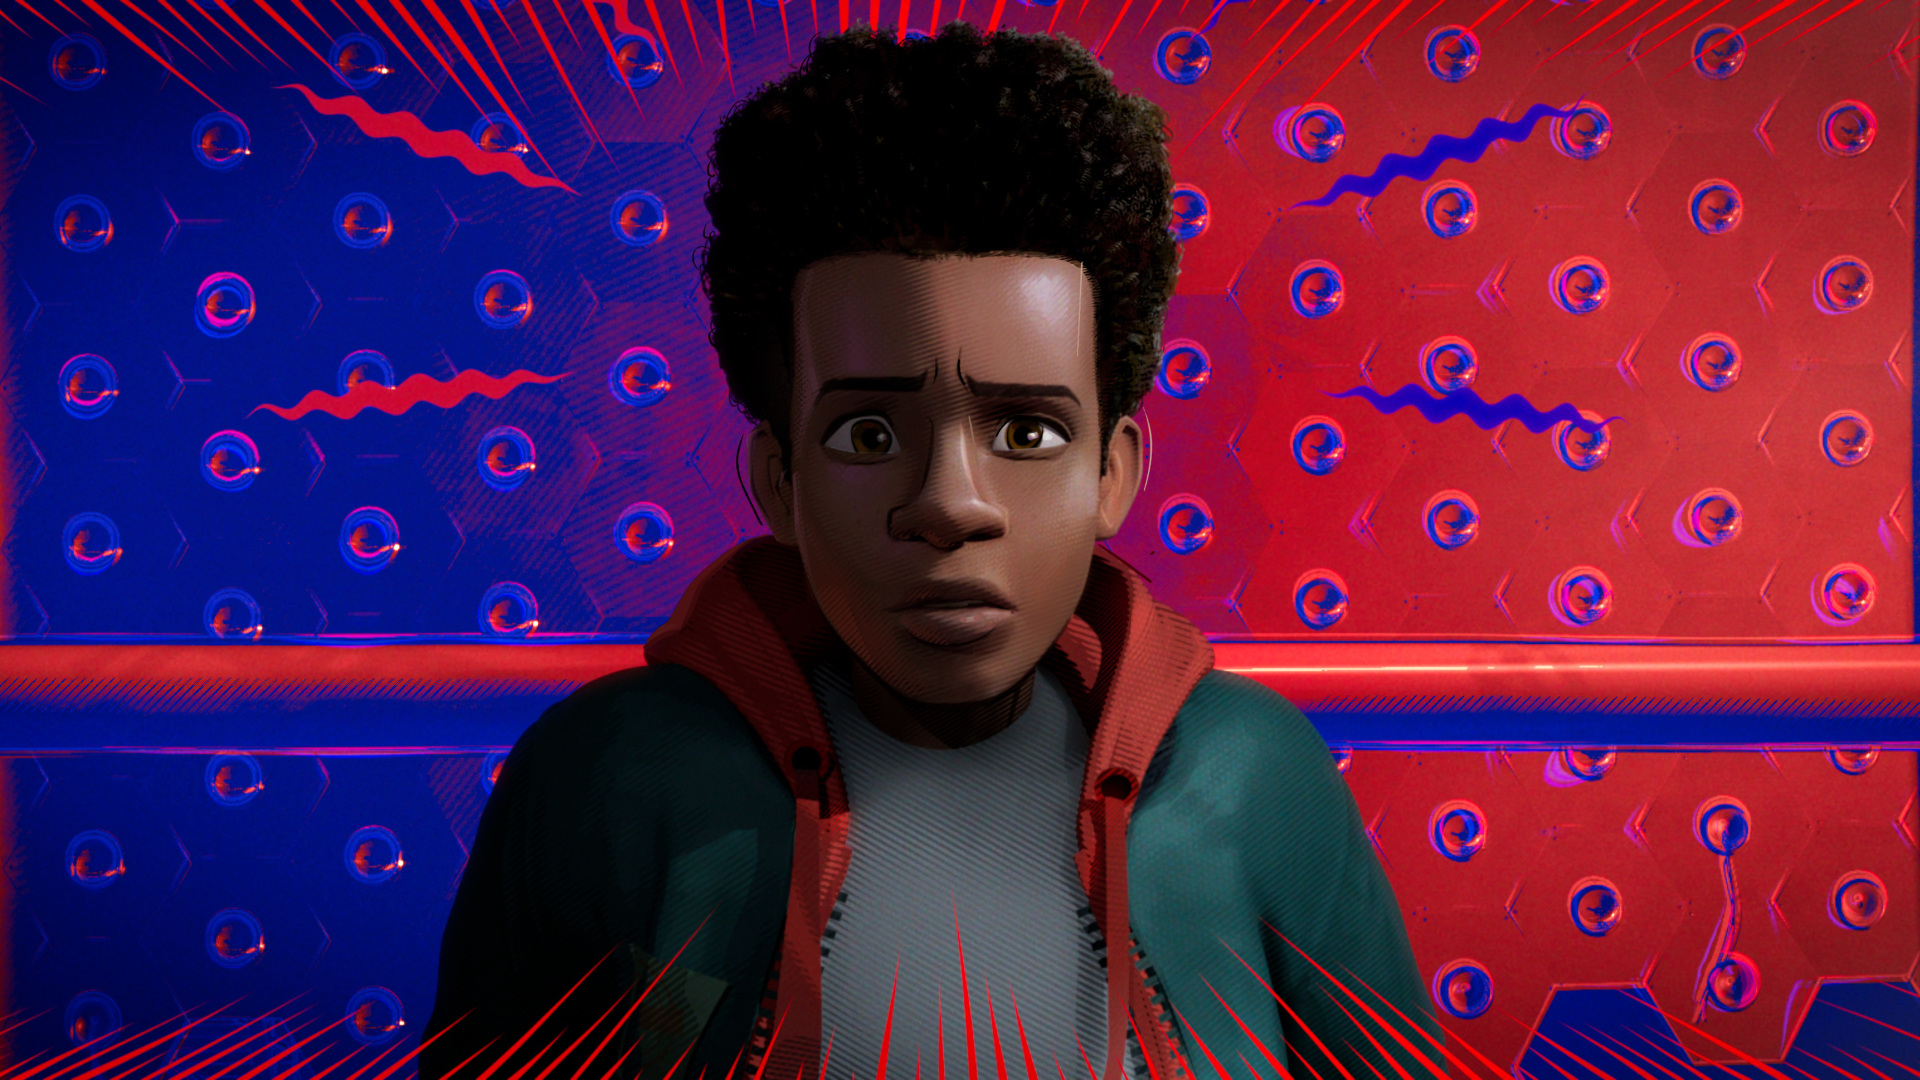 1920x1080 Miles Morales In Spider Man Into The Spider Verse 1080p